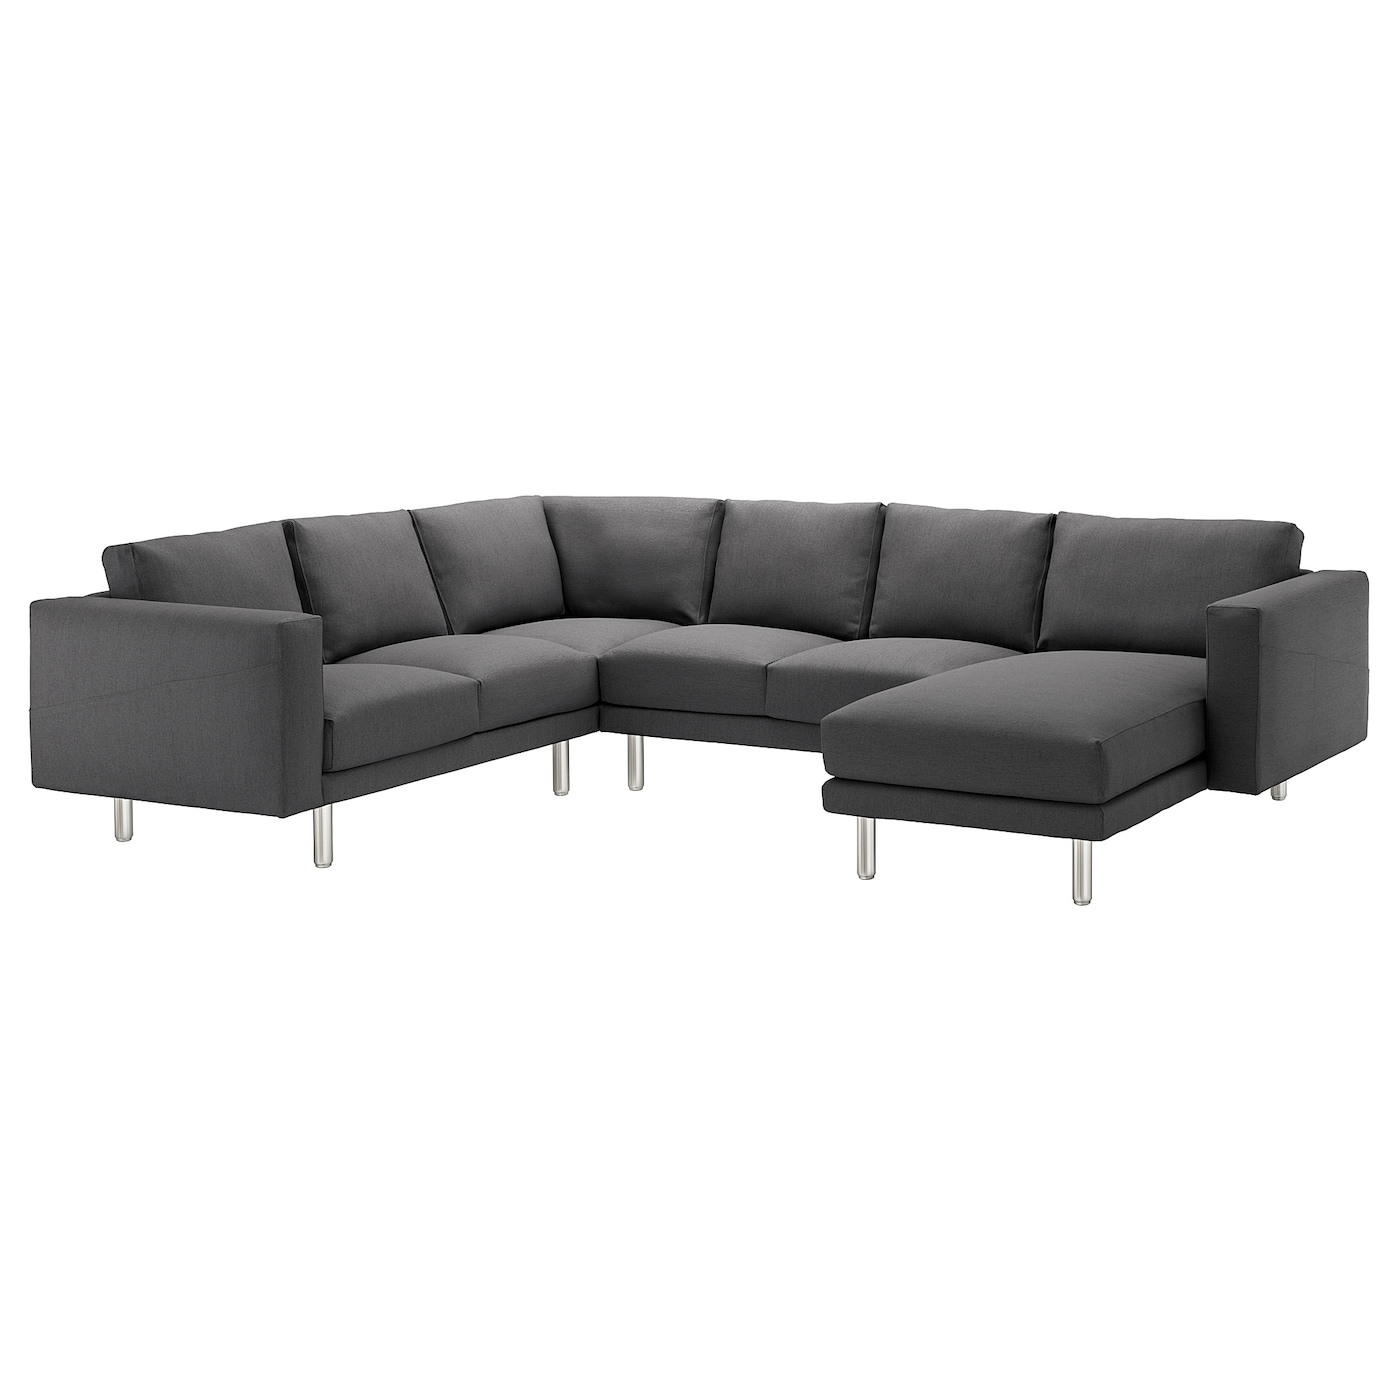 norsborg corner sofa 5 seat with chaise longue finnsta. Black Bedroom Furniture Sets. Home Design Ideas